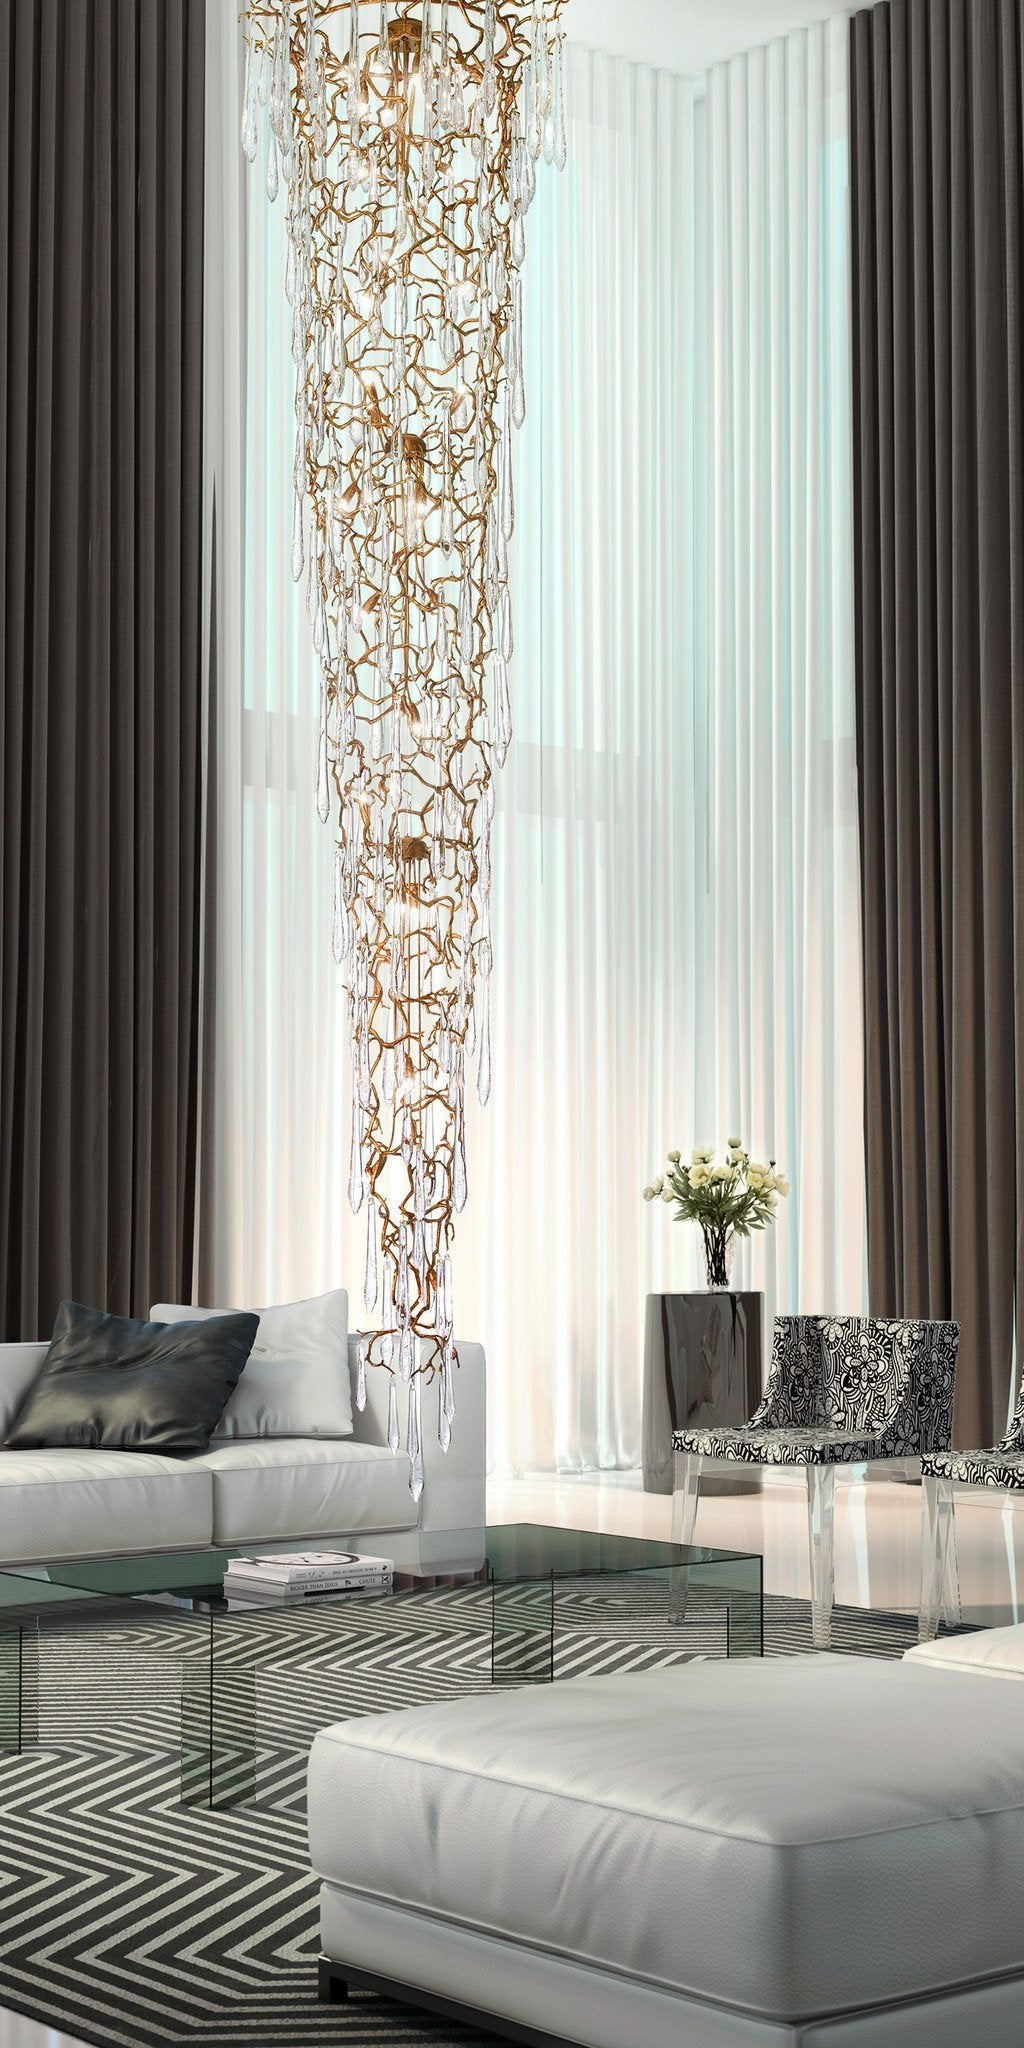 Serip Aqua 32 Lamp Bespoke Chandelier - London Lighting - 1